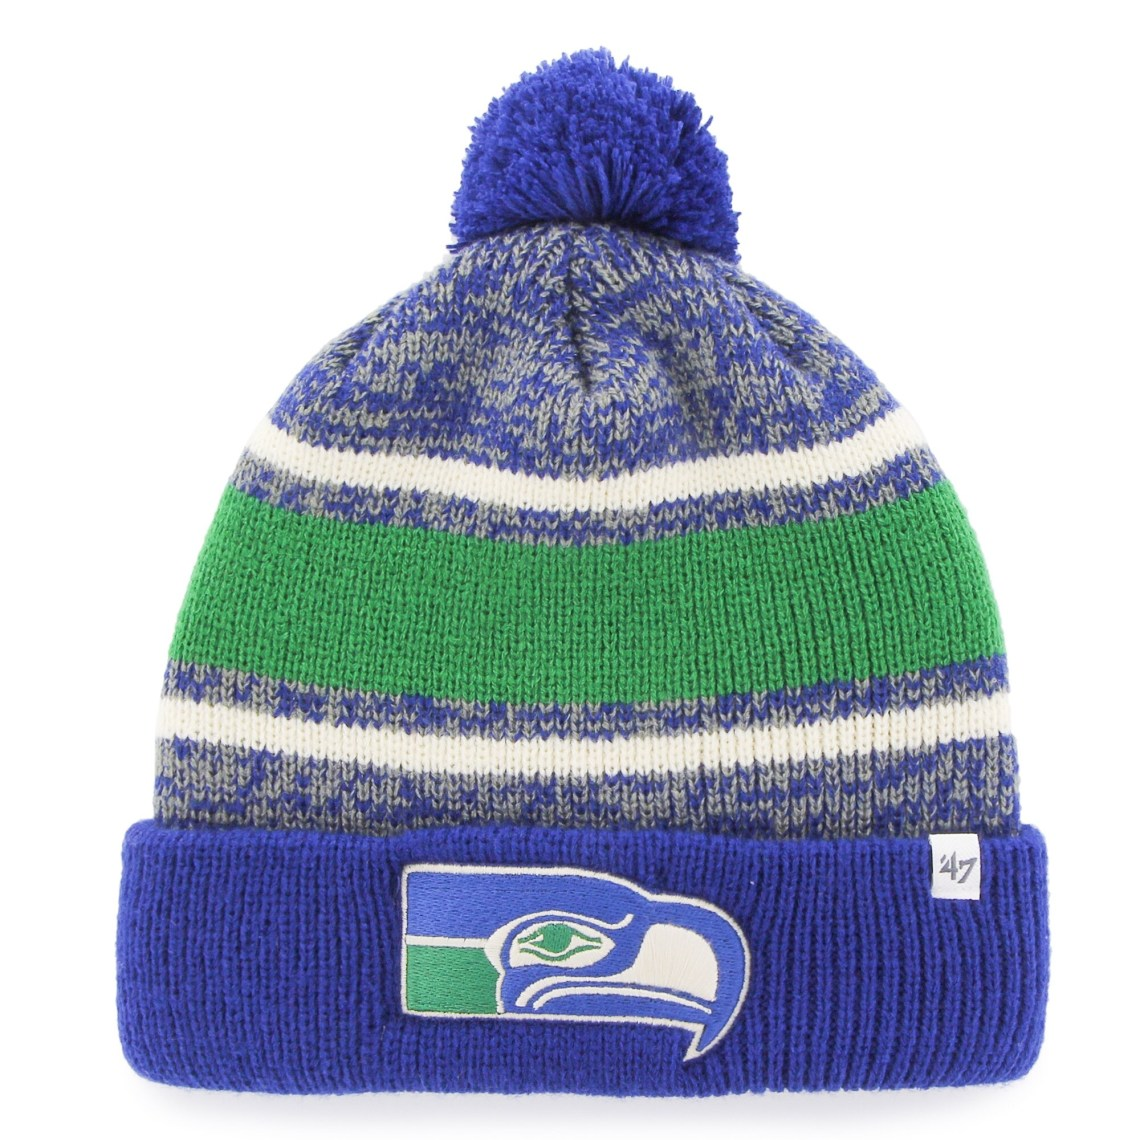 Men's Seattle Seahawks '47 Brand Royal Fairfax Cuffed Knit Hat with Pom